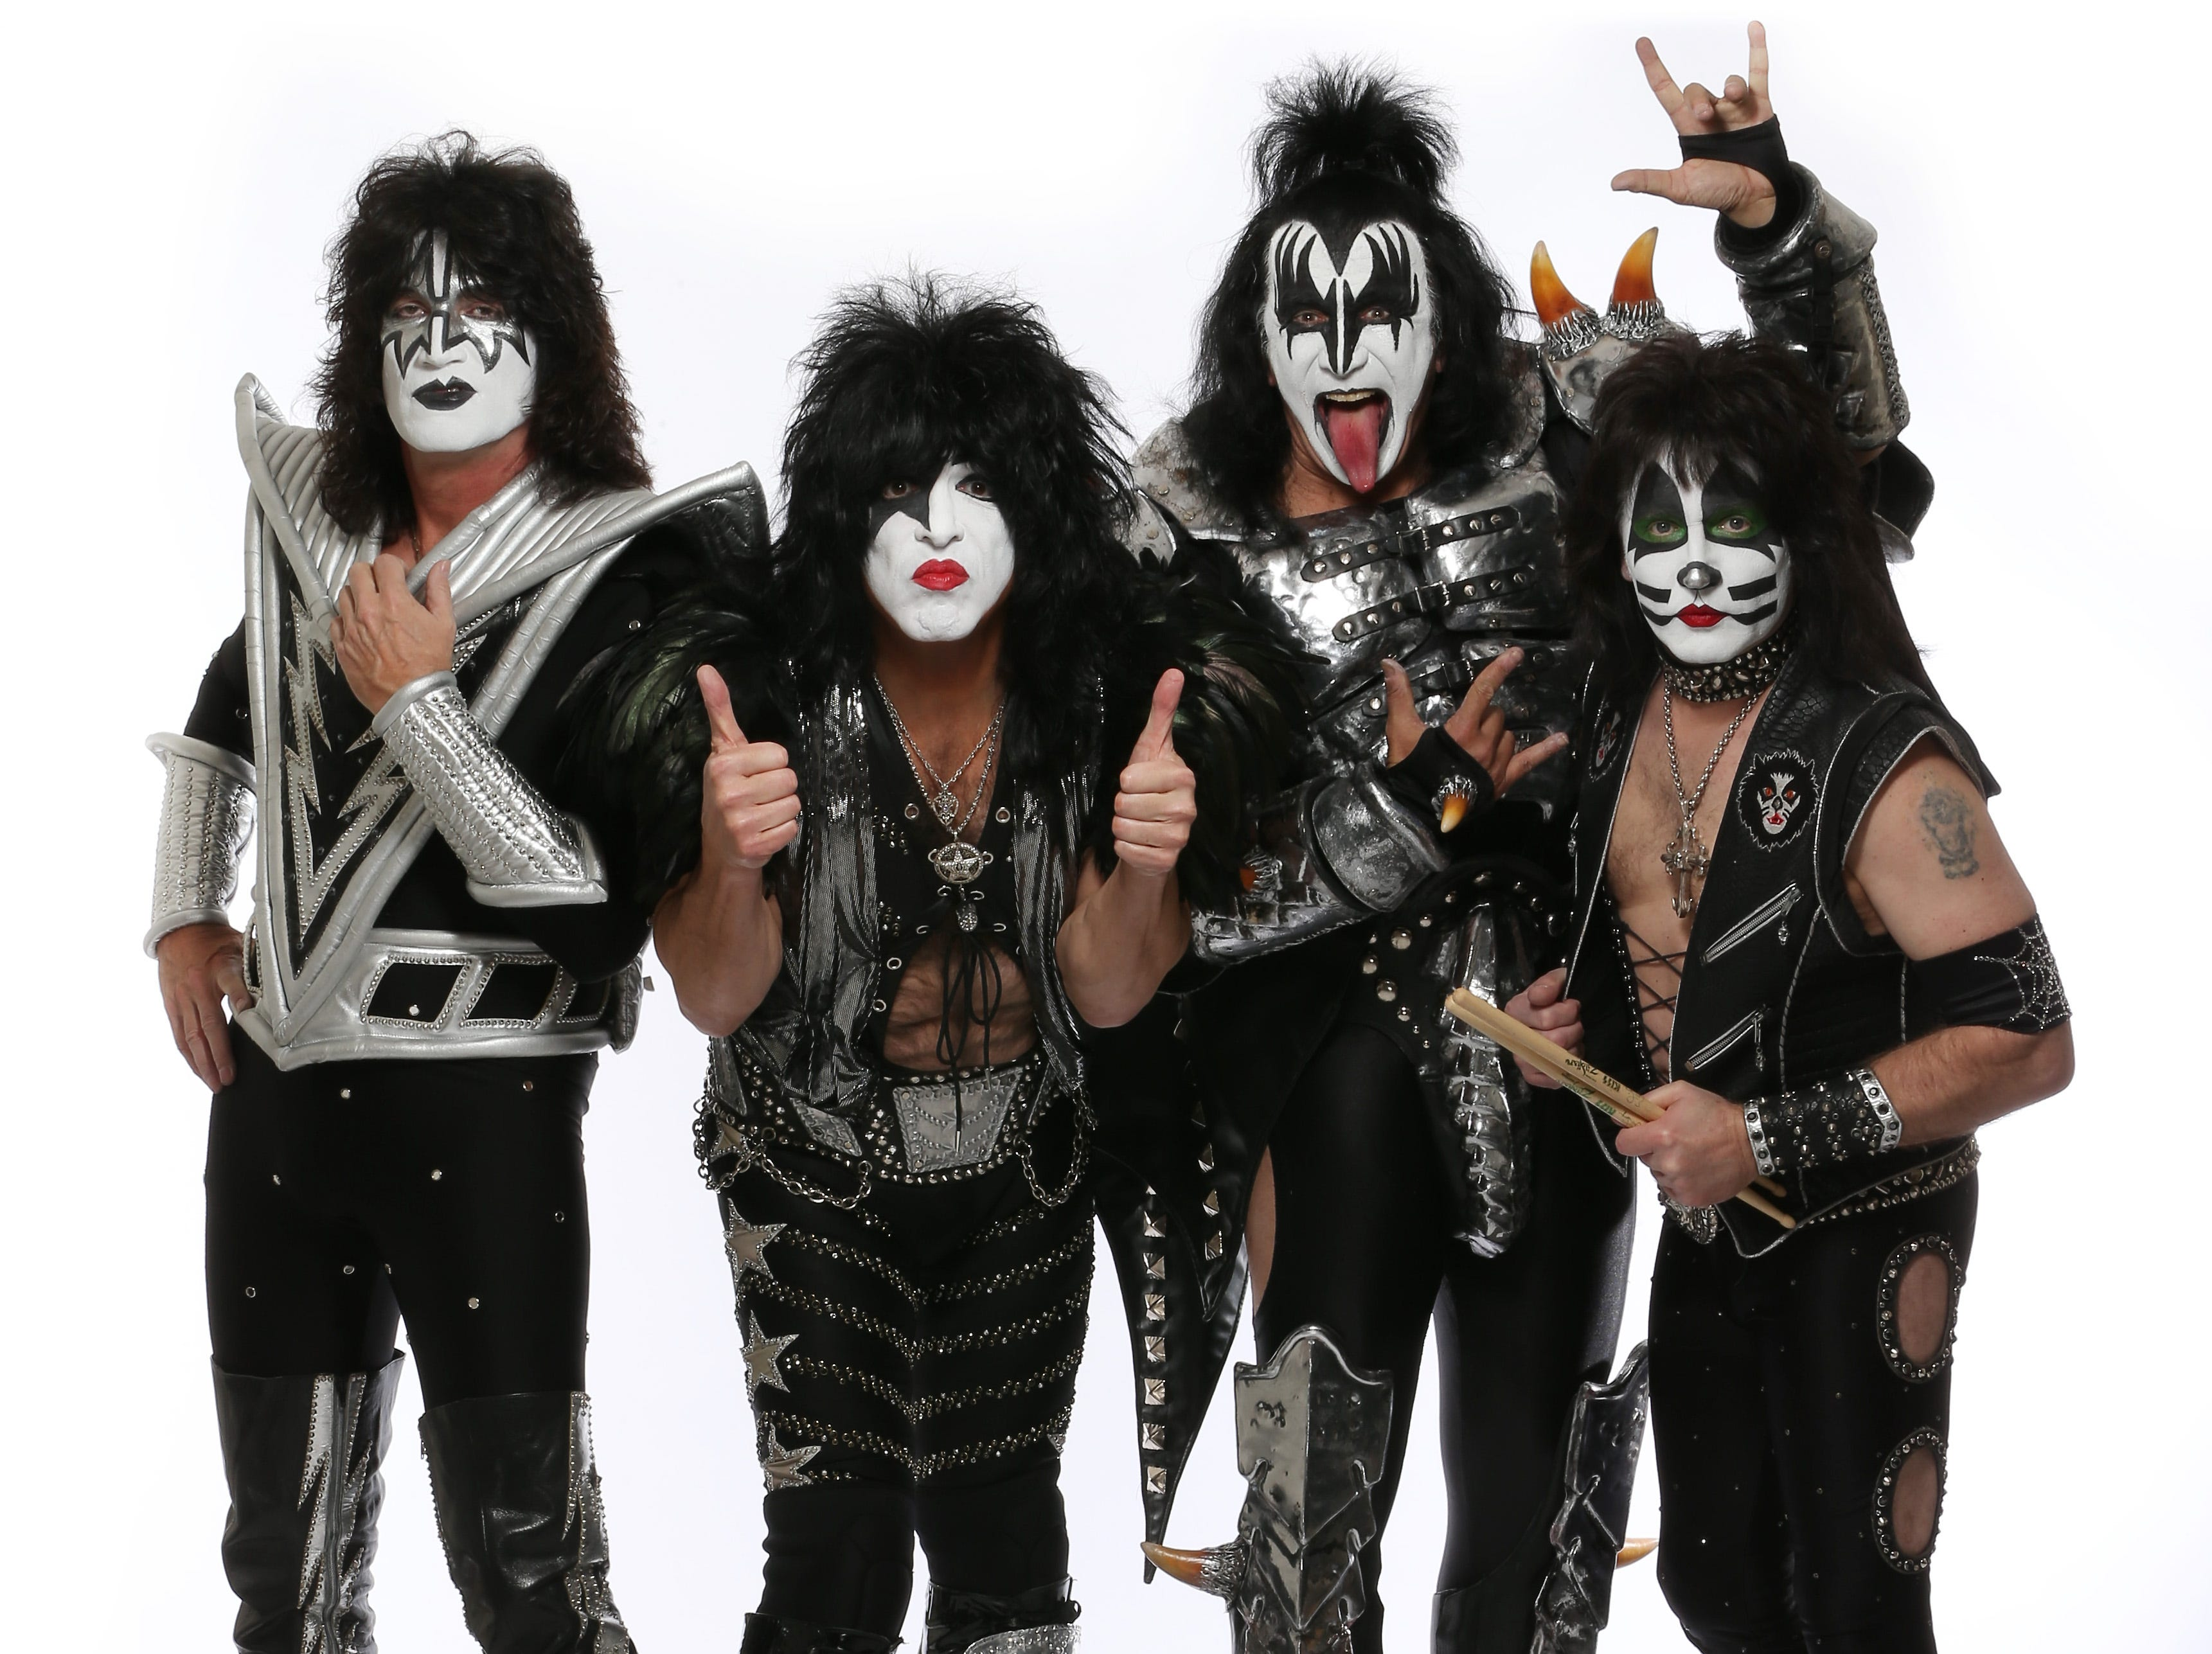 Dan MacMedan, USA TODAY The current lineup is Tommy Thayer, left, Paul Stanley, Gene Simmons and Eric Singer. 2/14/14 9:46:36 PM -- West Hollywood, CA, U.S.A  -- Members of the rock band KISS:  Paul Stanley (The Star Child), Gene Simmons (The Demon) , Eric Singer (The Catman), Tommy Thayer ( The Spaceman) pose in full makeup and costume before playing at the House of Blues in West Hollywood, CA. Photographed at the Mondrian Hotel in West Hollywood --    Photo by Dan MacMedan, USA TODAY contract photographer  ORG XMIT:  DM 130691 KISS 2/14/2014 [Via MerlinFTP Drop]